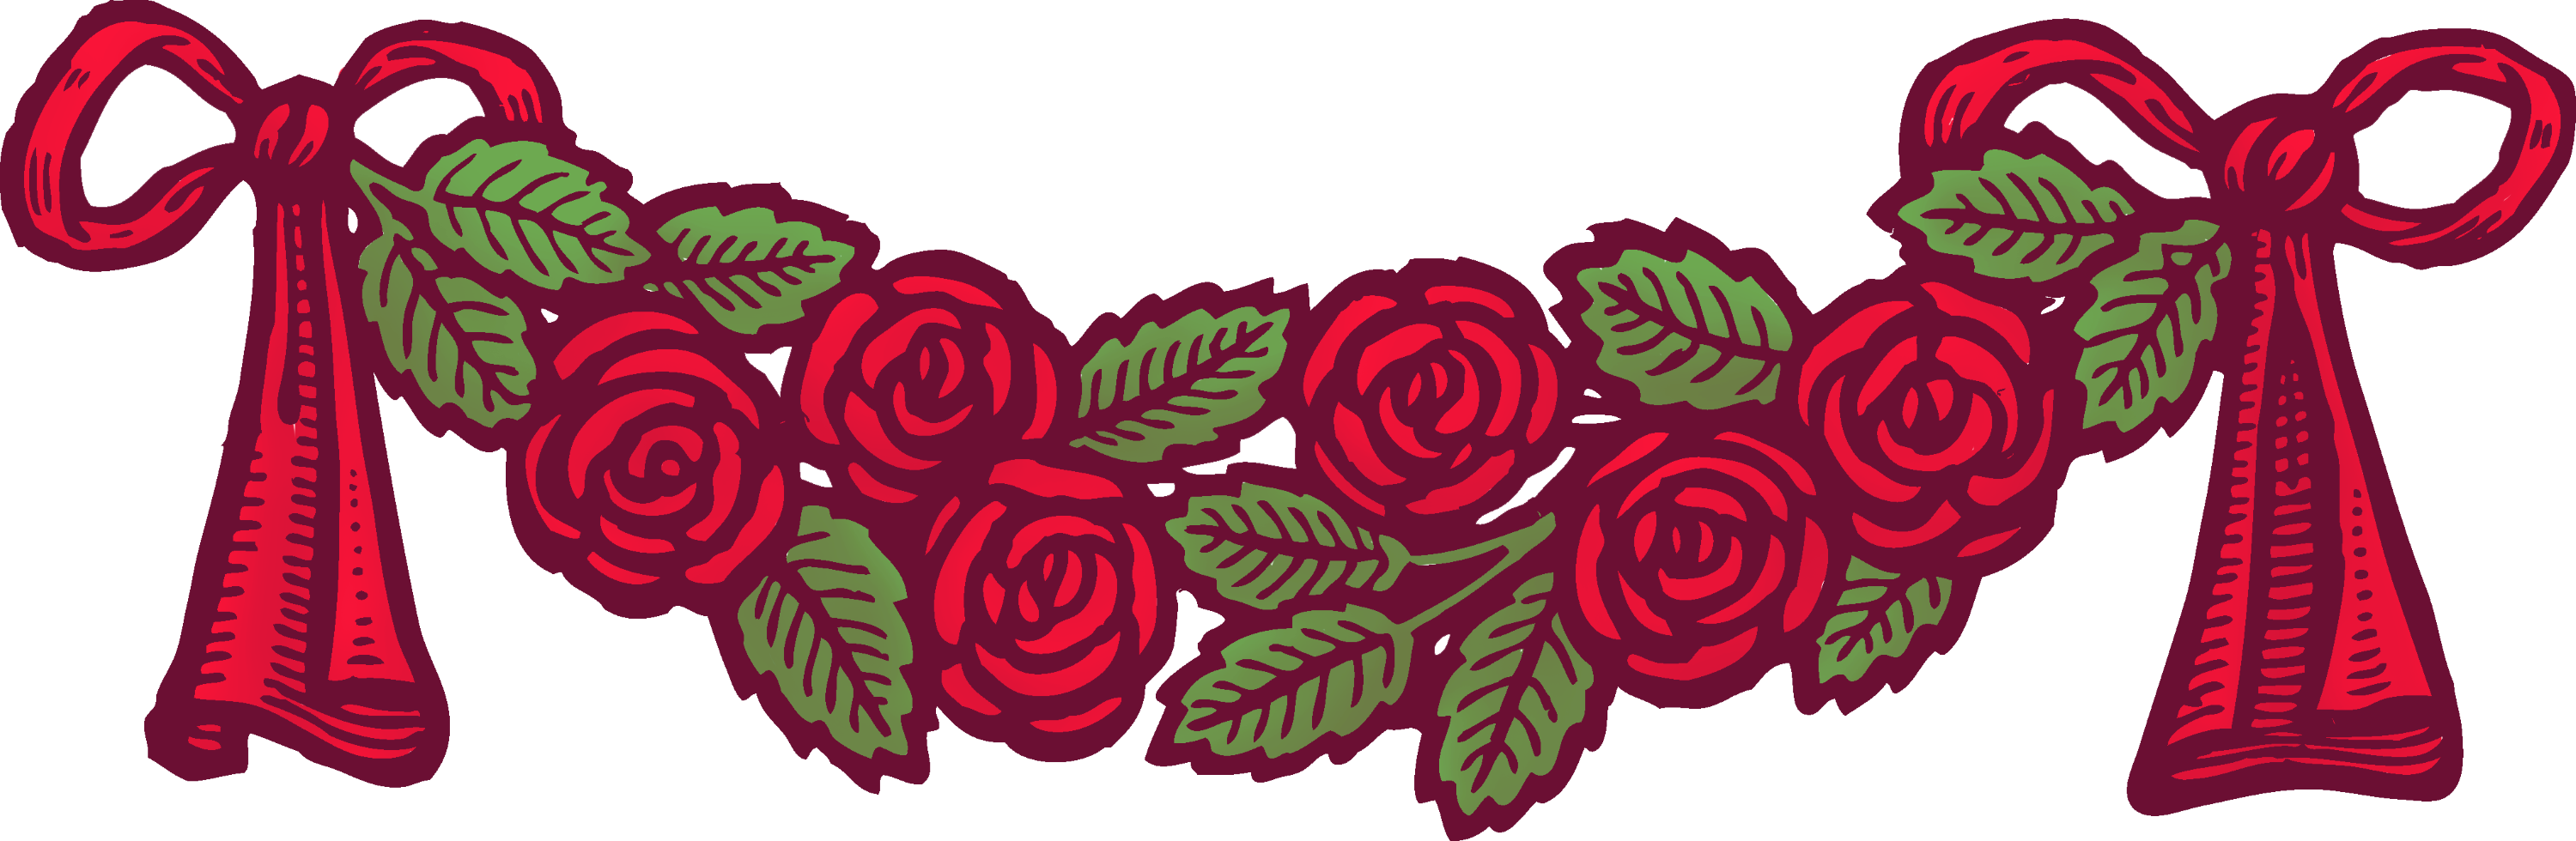 vintage red roses with ribbons banner free clip art rh sweetclipart com ribbon banner clip art black and white black ribbon banner clipart